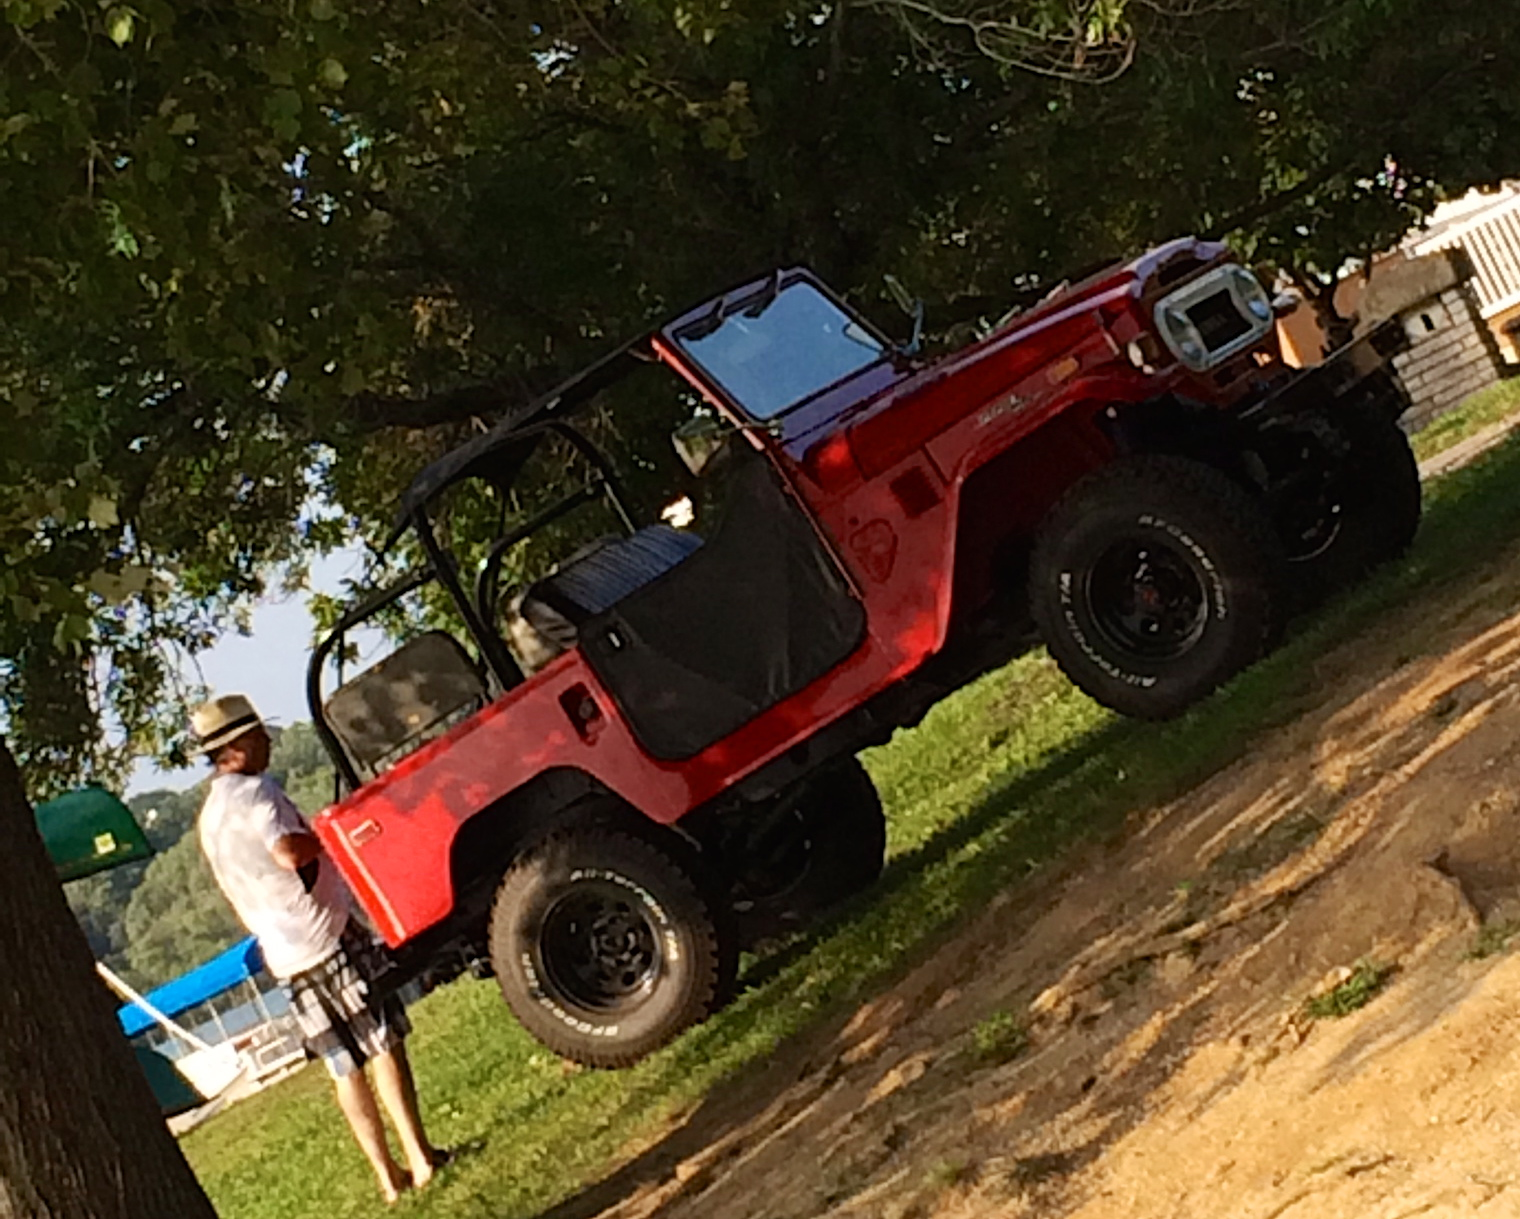 Tom - packing up the FJ40